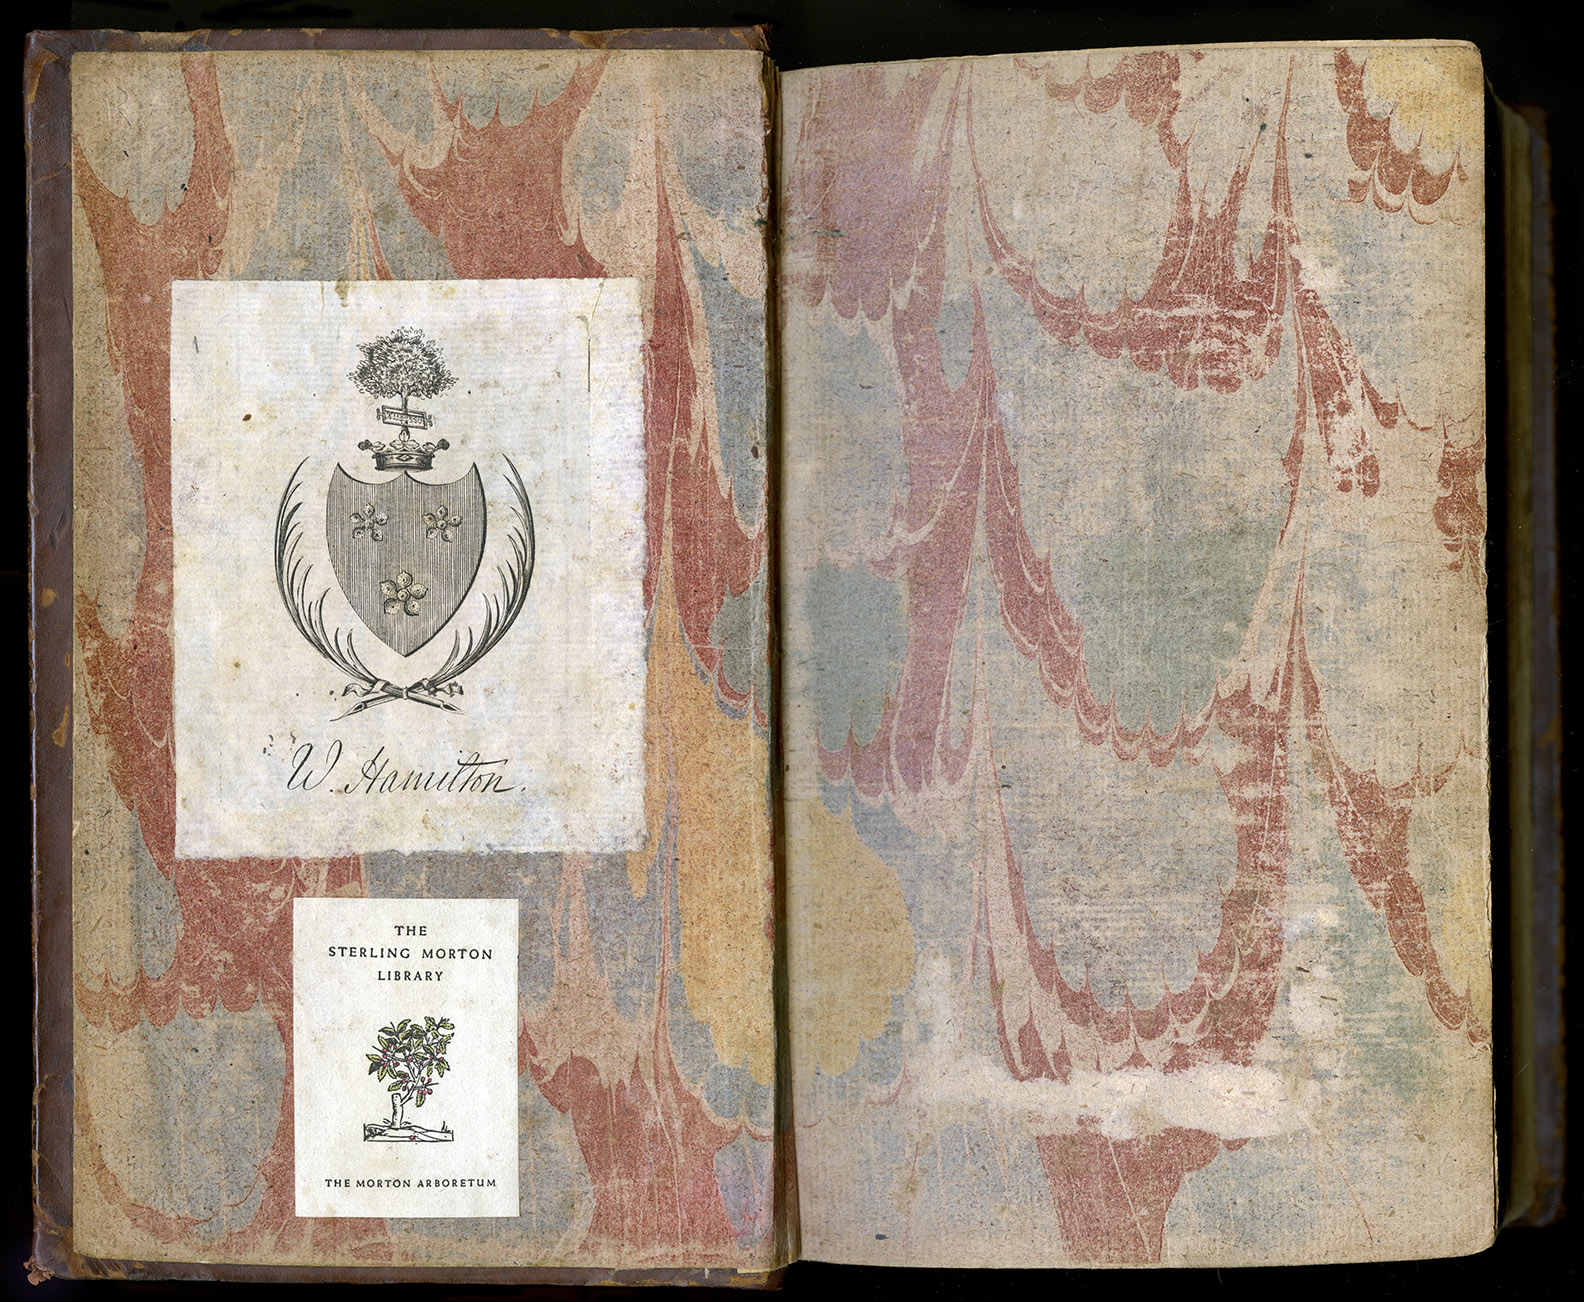 """William Hamilton's bookplate,engraved with the Hamilton family arms and """"W. Hamilton,"""" graces the inside cover of the copy of  Travels  held at Morton Arboretum.(Image courtesy of the Sterling Morton Library)"""